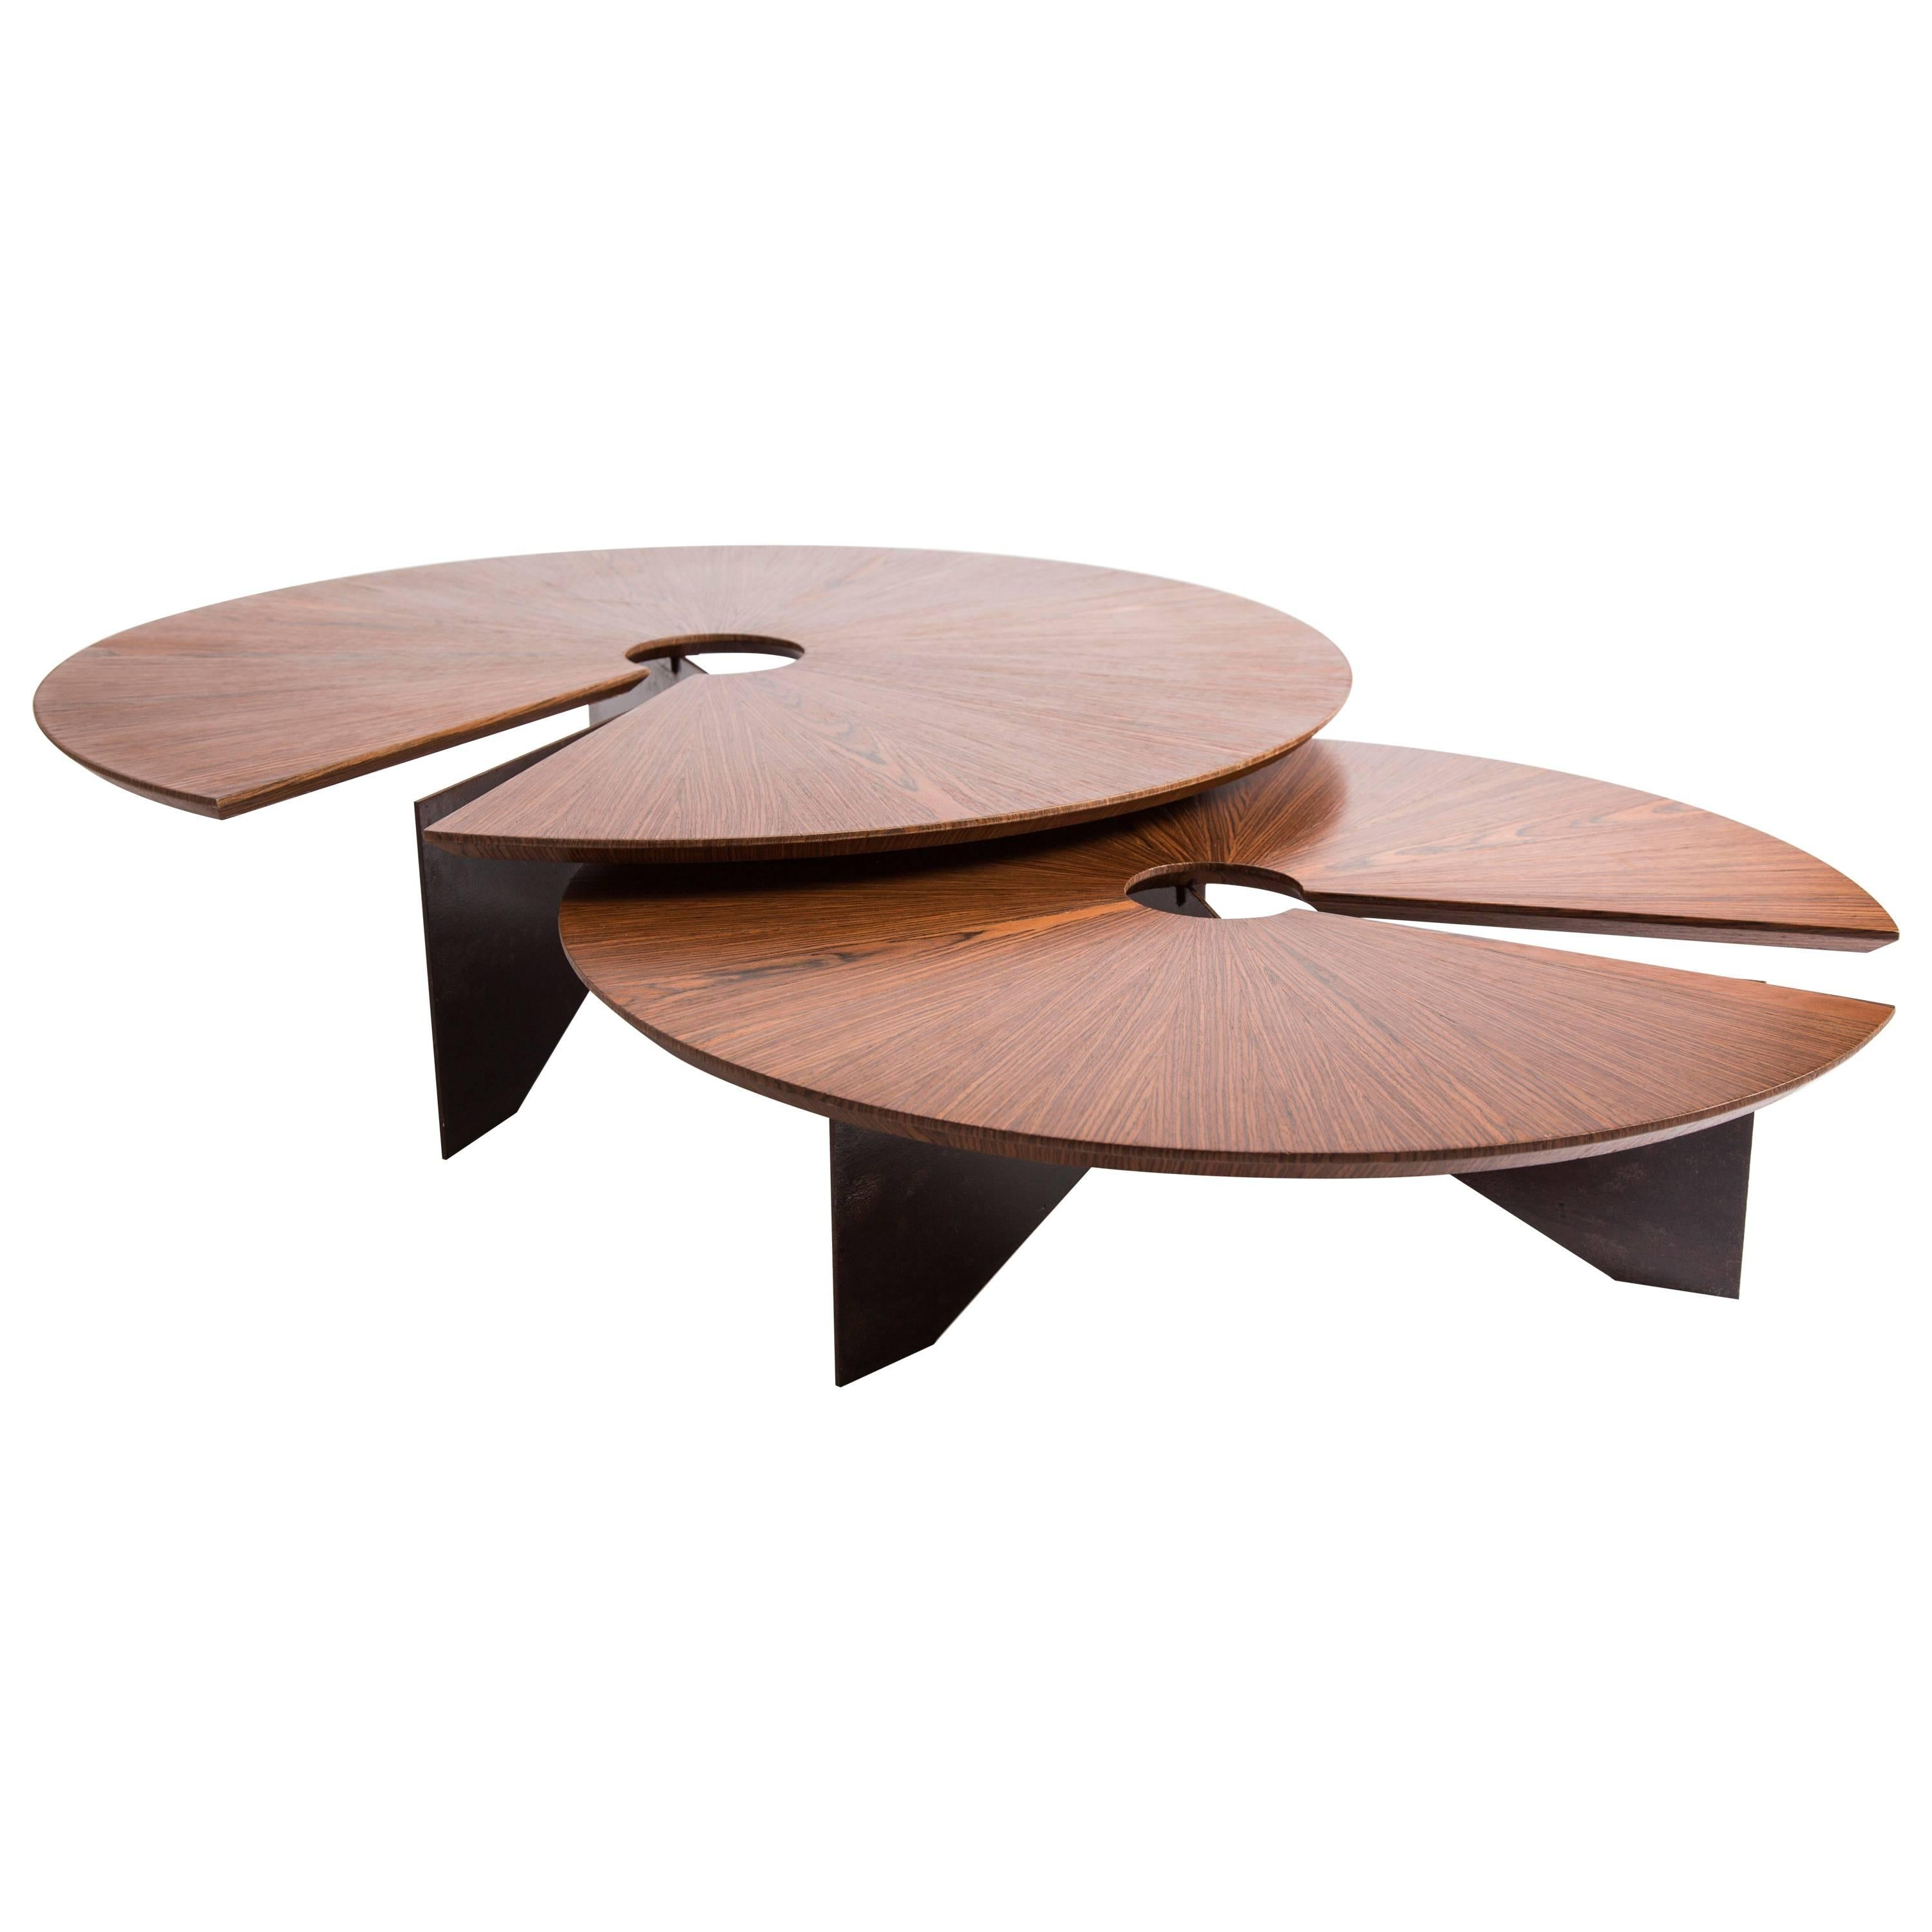 Lena Coffee Table Size Small, Minimalist And Modern Style For Sale